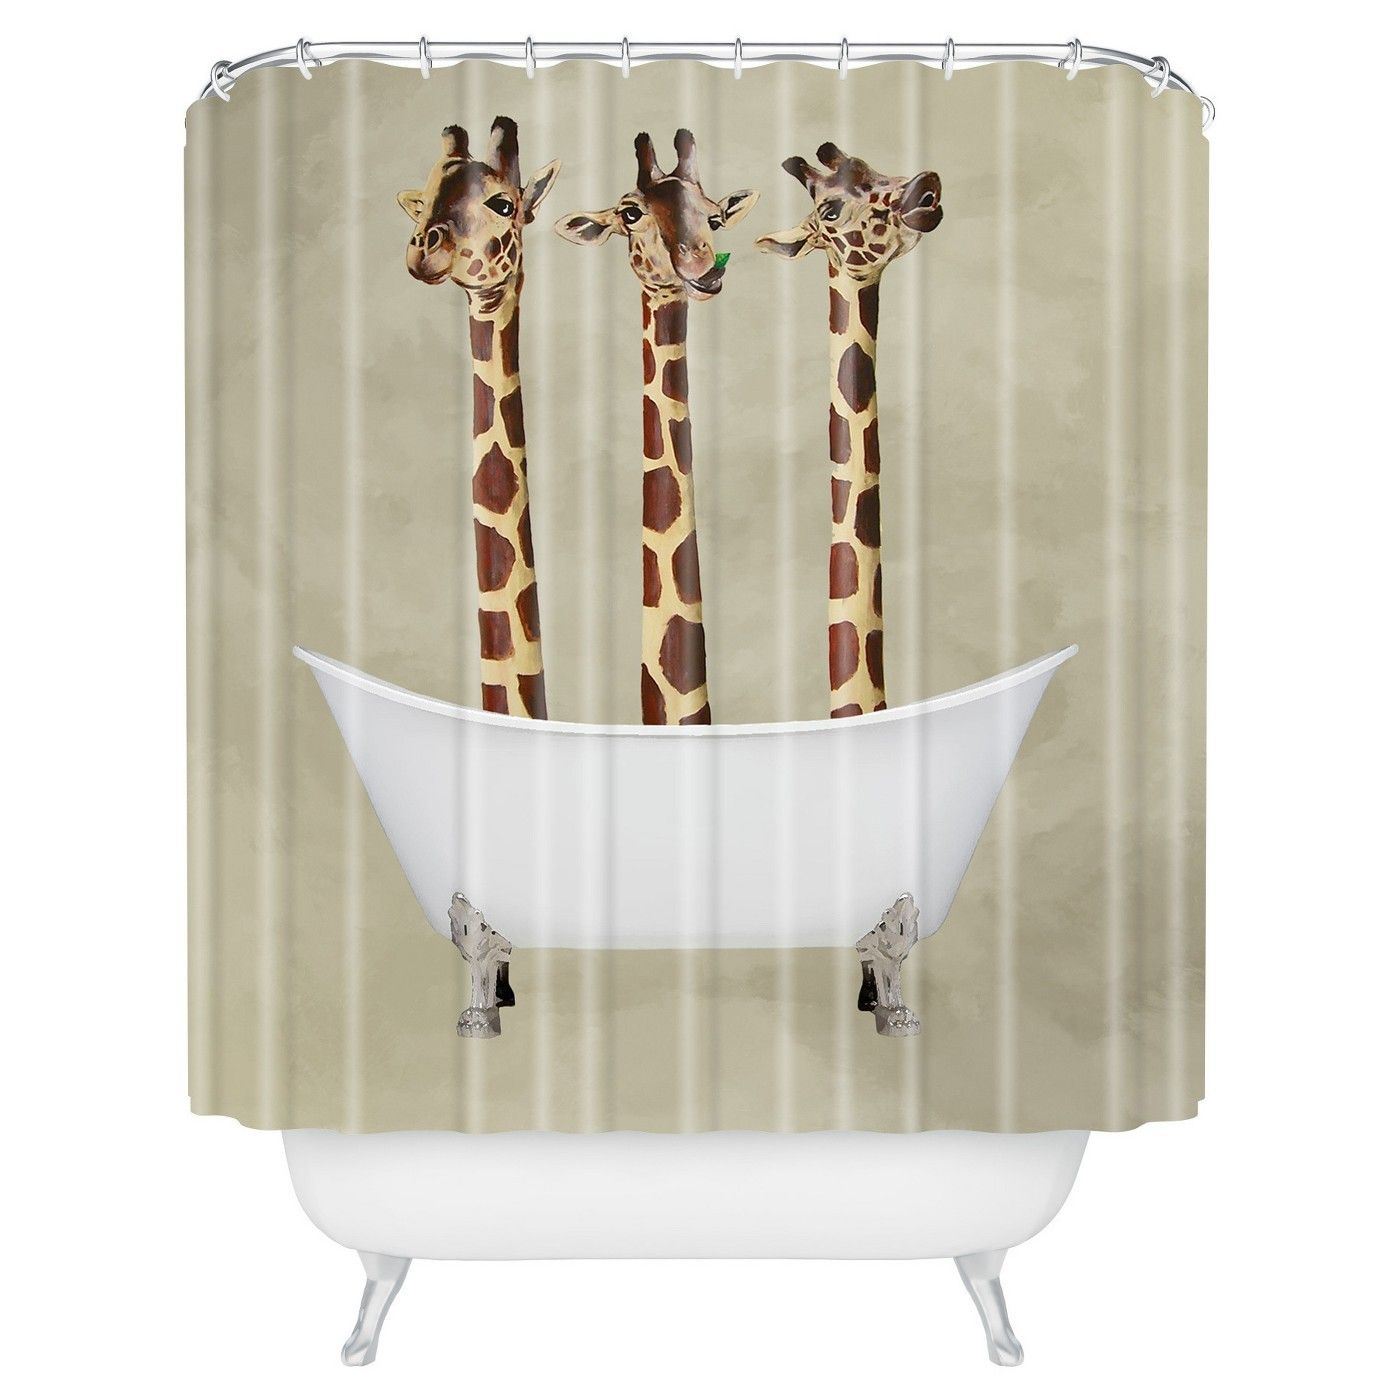 Pin by Patty Harless on Giraffe art Cool shower curtains